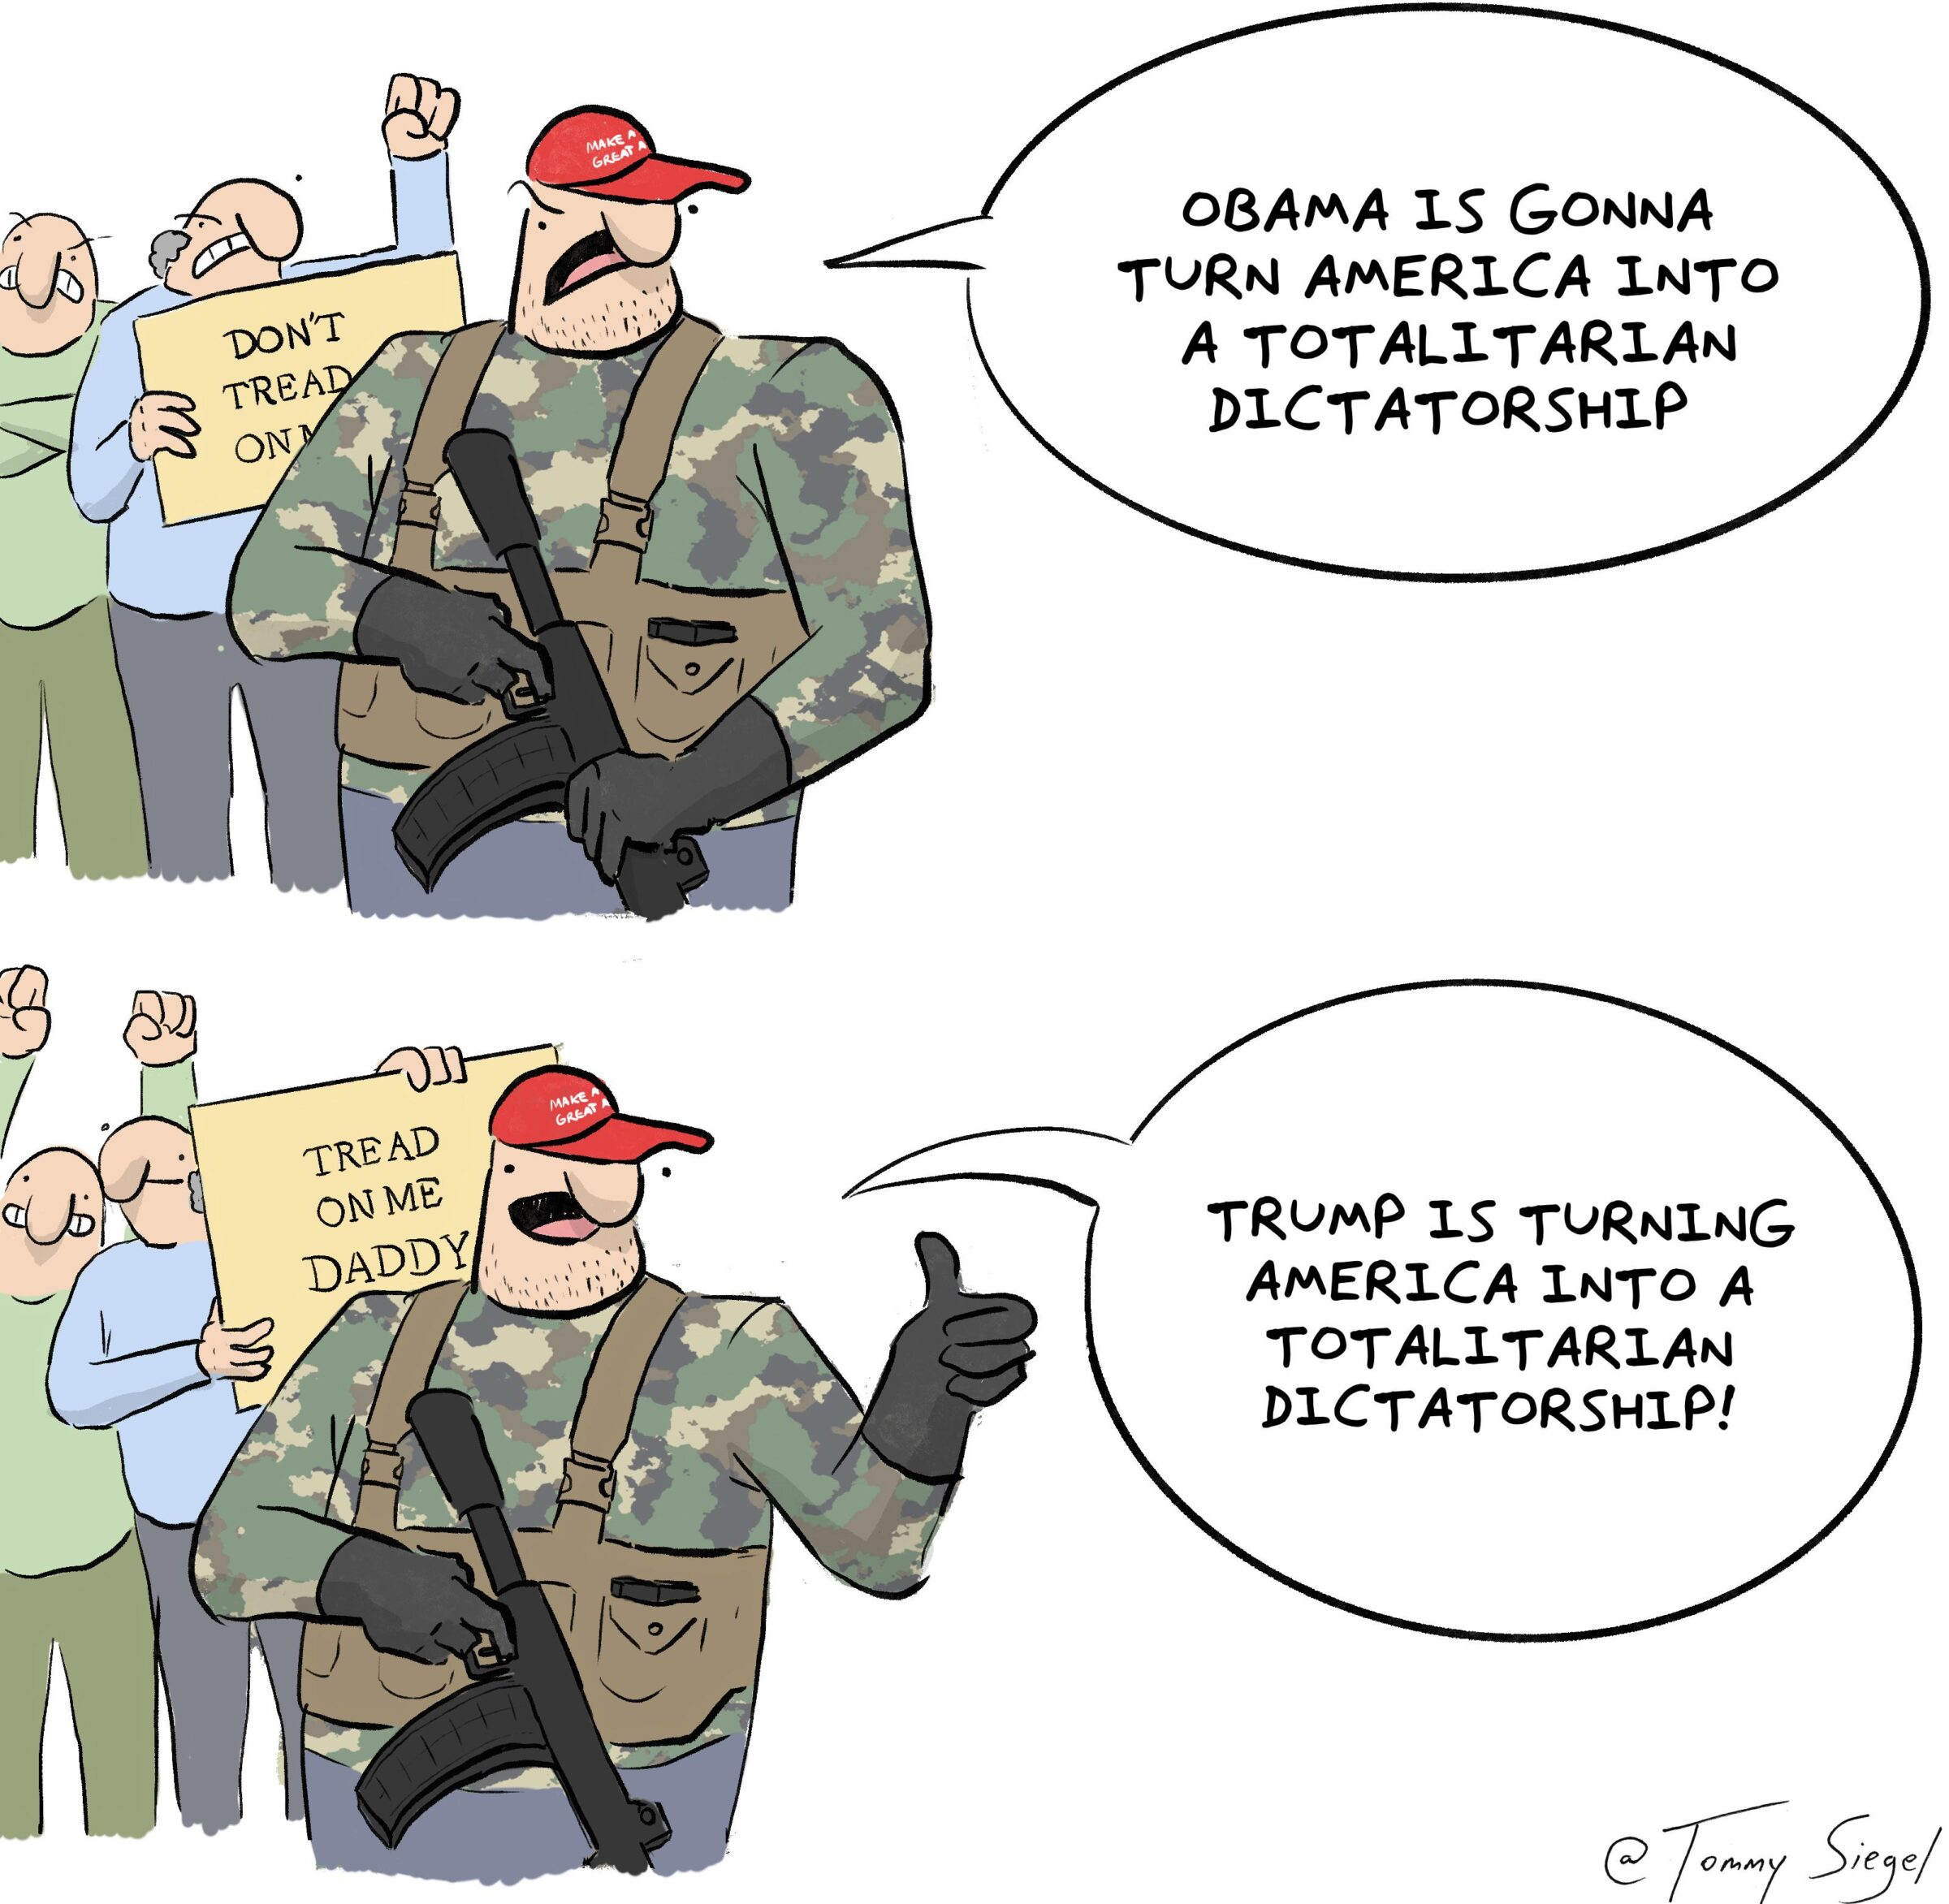 Funny how that works (from tommysiegel), Trump, Republicans, Obama, MallaPip, Covid Comics Funny how that works (from tommysiegel), Trump, Republicans, Obama, MallaPip, Covid text: DADDY OBAMA GONNA TURN AMERICA INTO A TOTALITARIAN DICTATORSHIP TRUMP TURNING AMERICA INTO A TOTALITARIAN DICTATORSHIP!